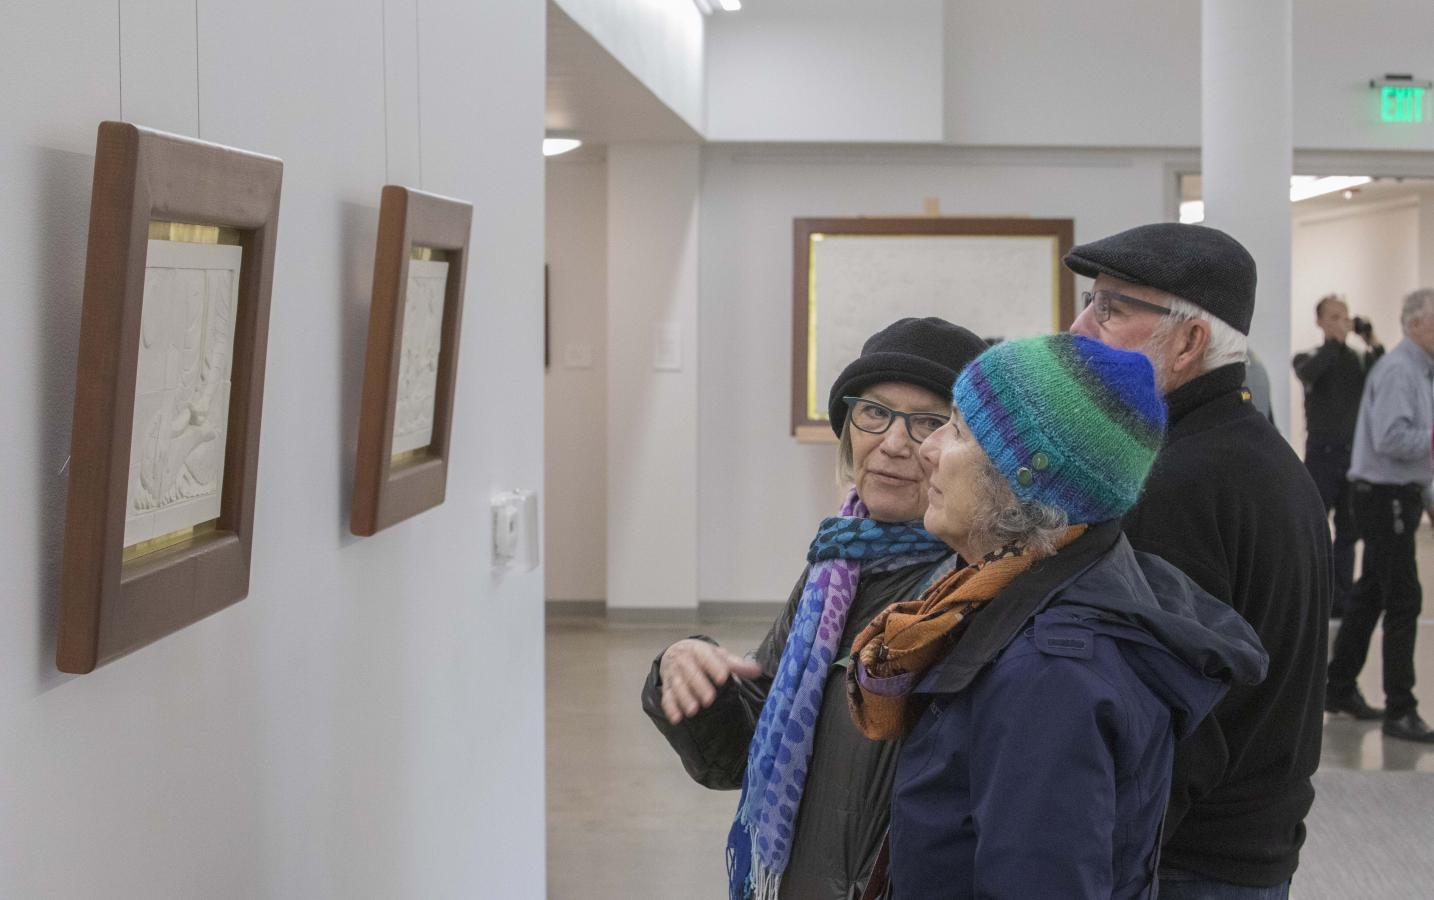 Visitors discuss ceramic reliefs at the opening of Śākyamuni Buddha: A Story, February 16